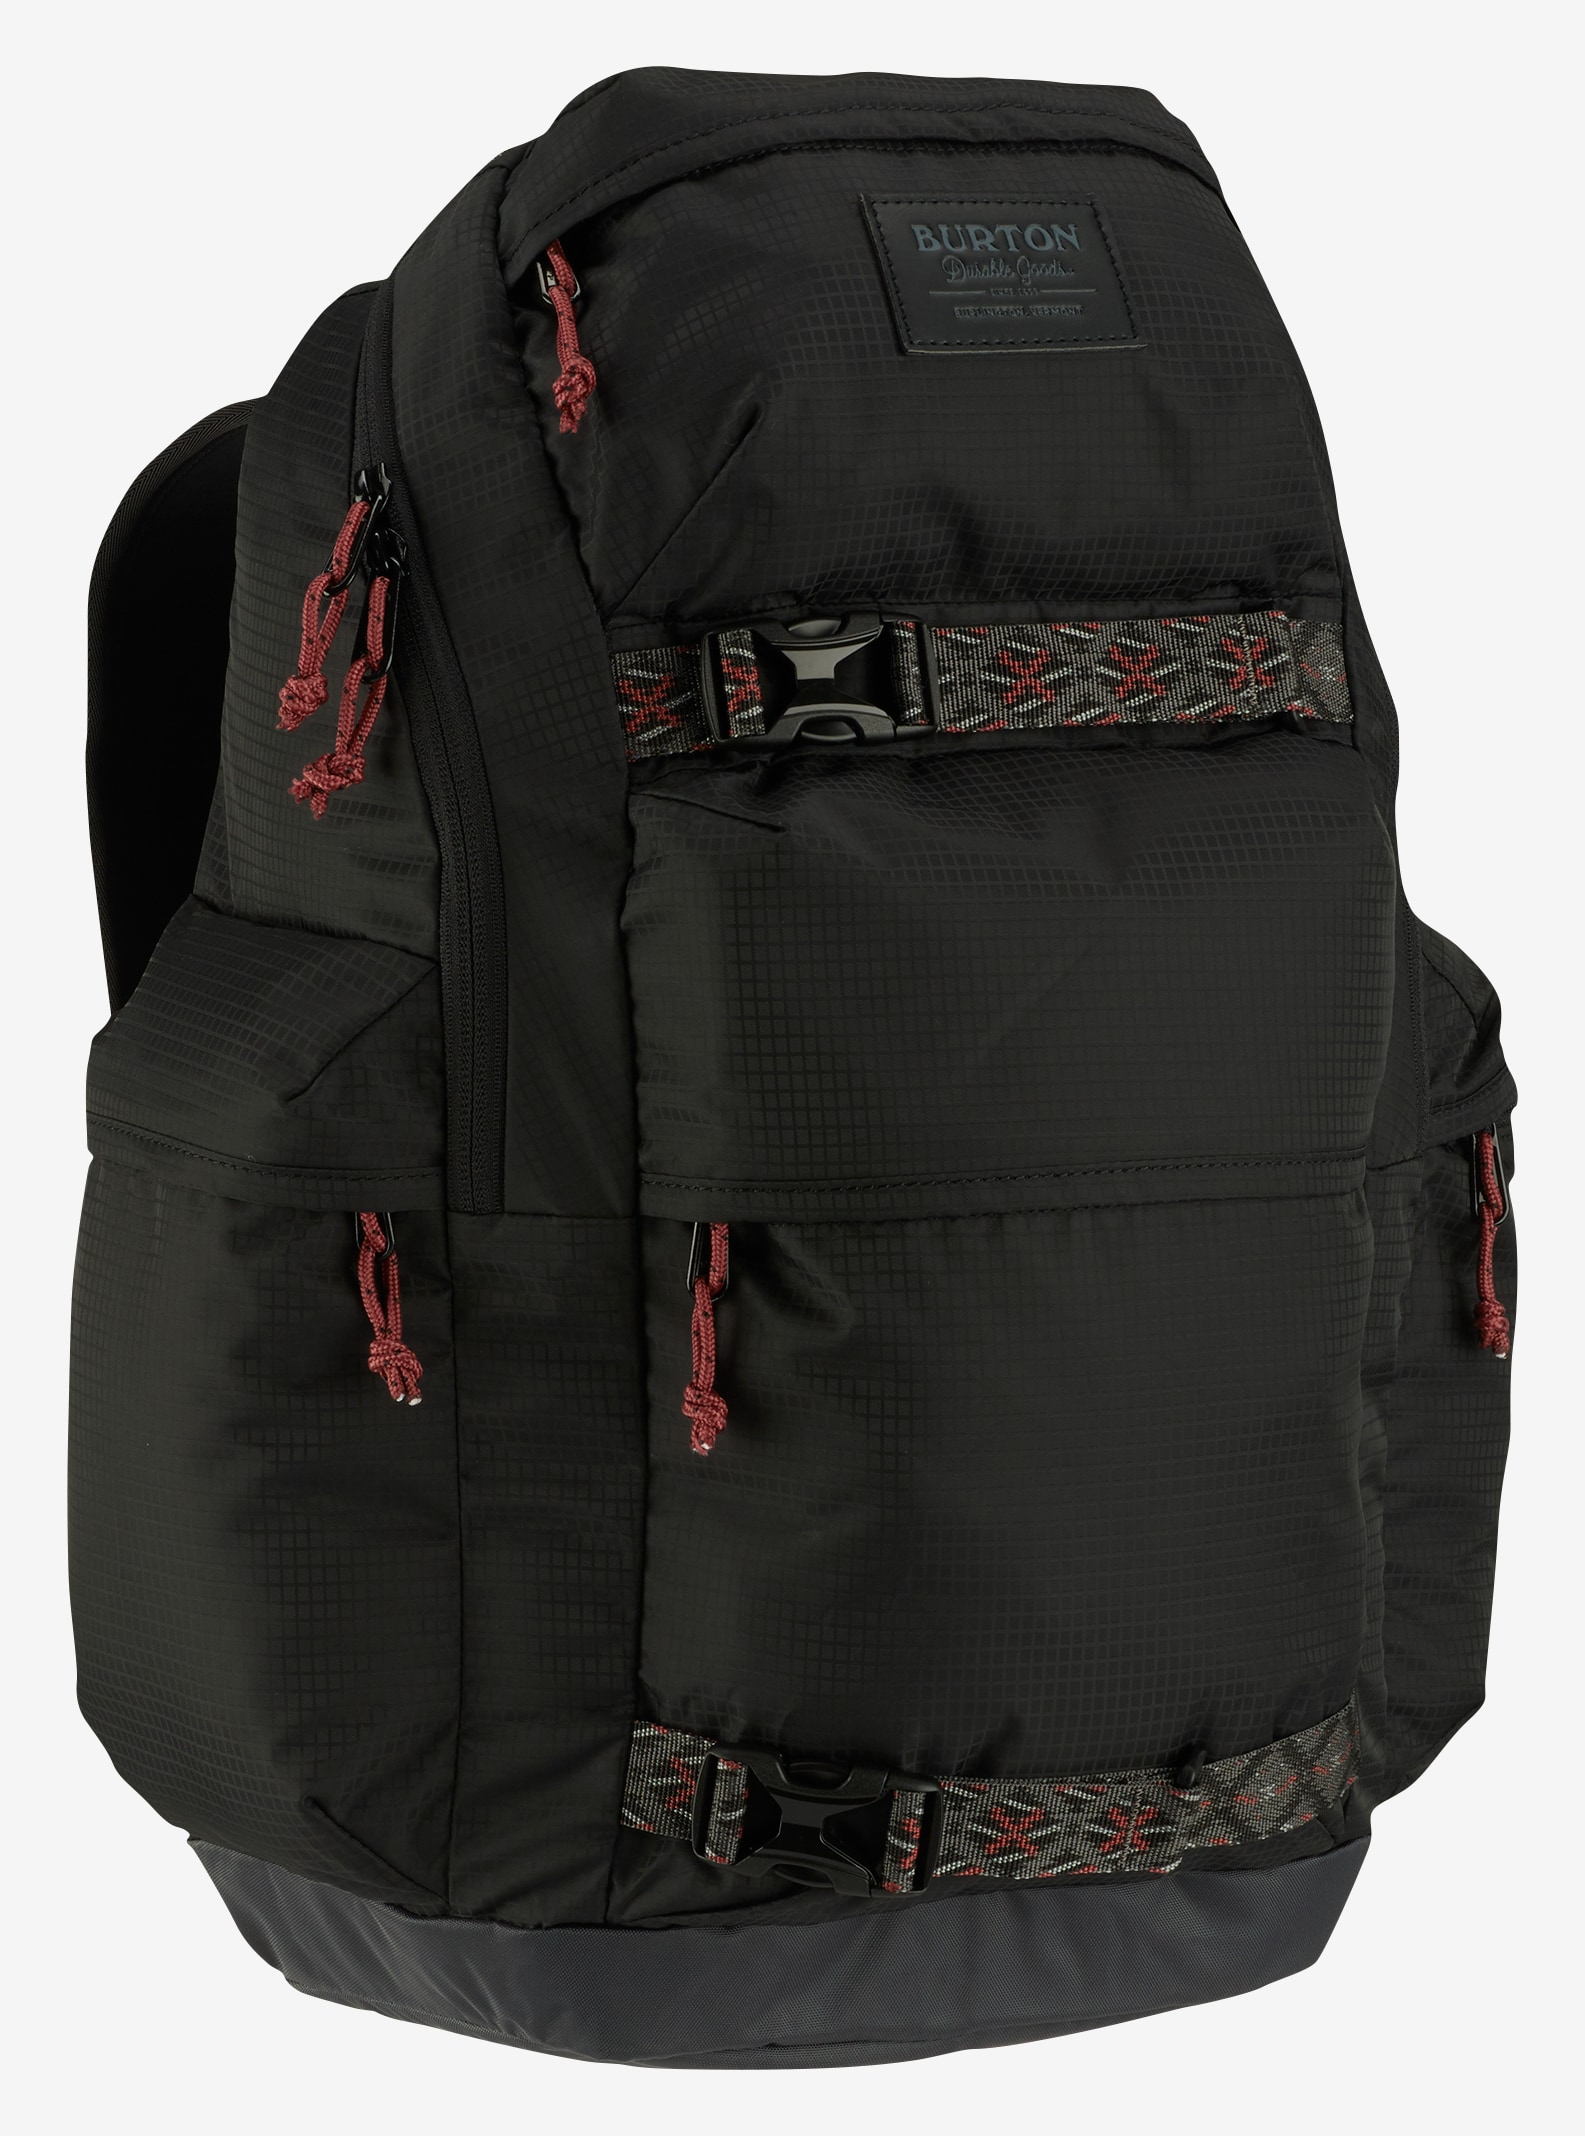 Burton Kilo Backpack shown in True Black Mini Rip